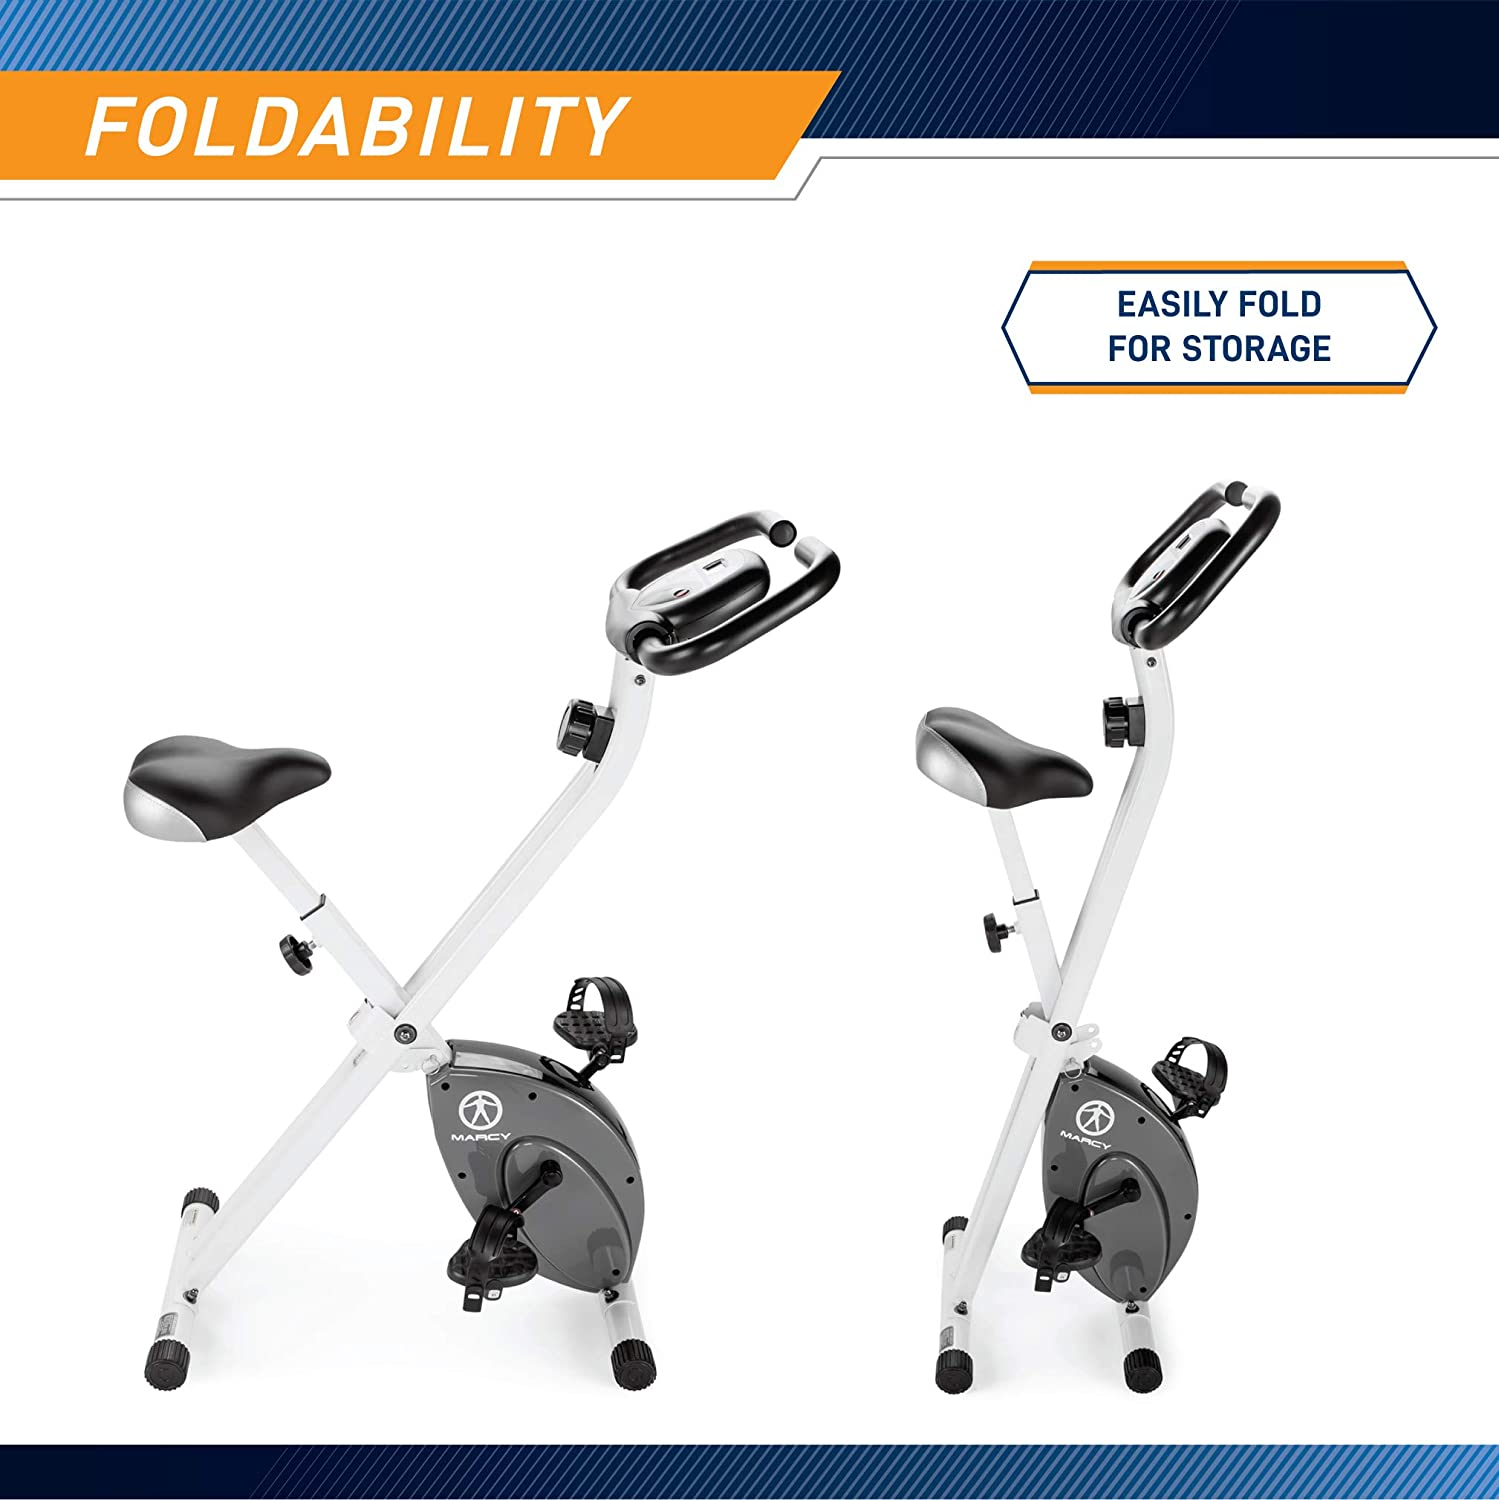 Marcy Foldable Exercise Bike Reviews In 2020 - Best 3 Model 2